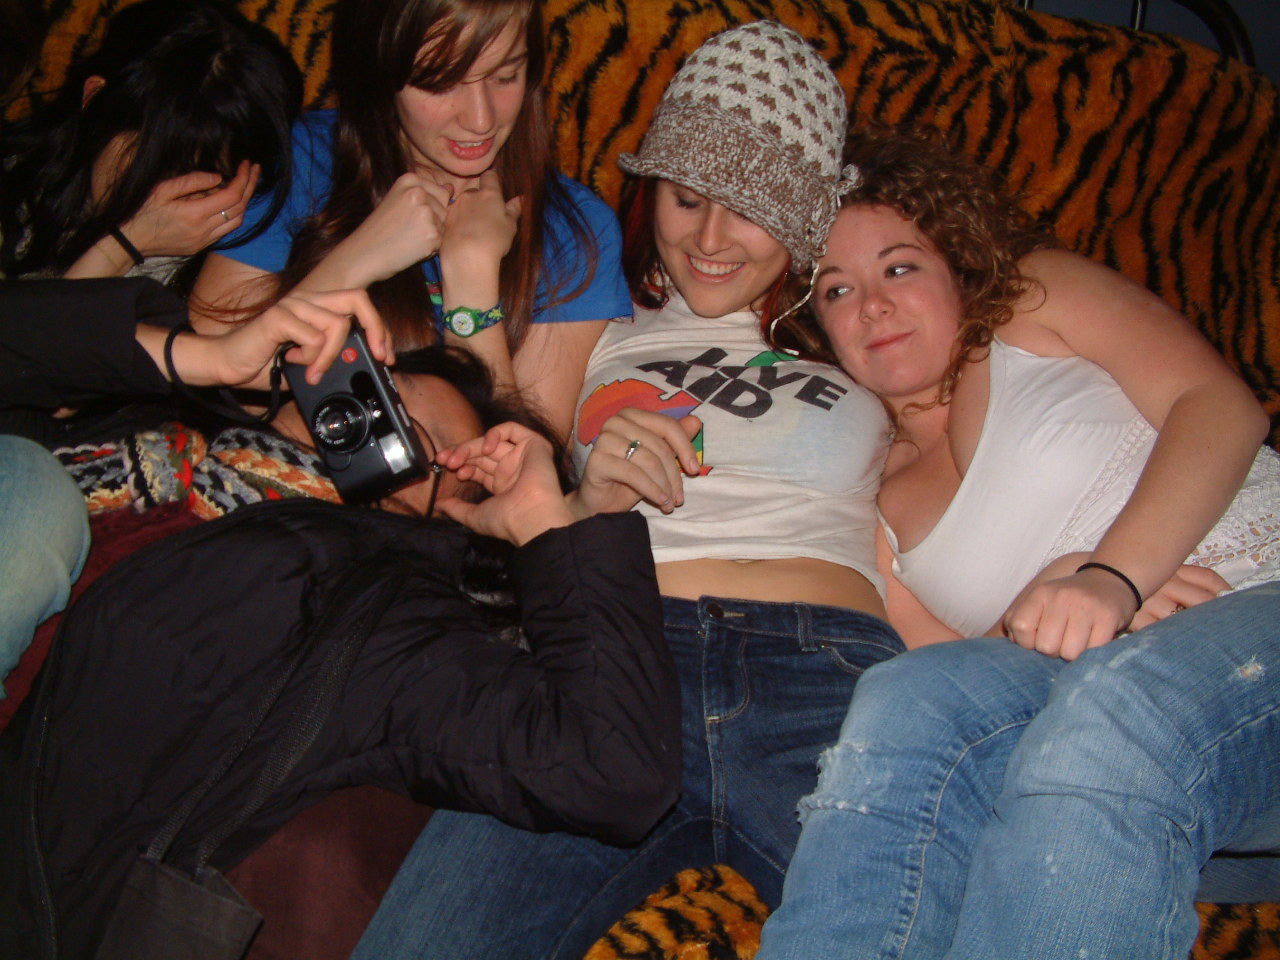 Digging back even further! In college, here is a throwback Couch of My Faves™: also featuring Rachel and Lexi, elsewhere mentioned on this blog. Lauren is the one taking a photo of my taking a photo.